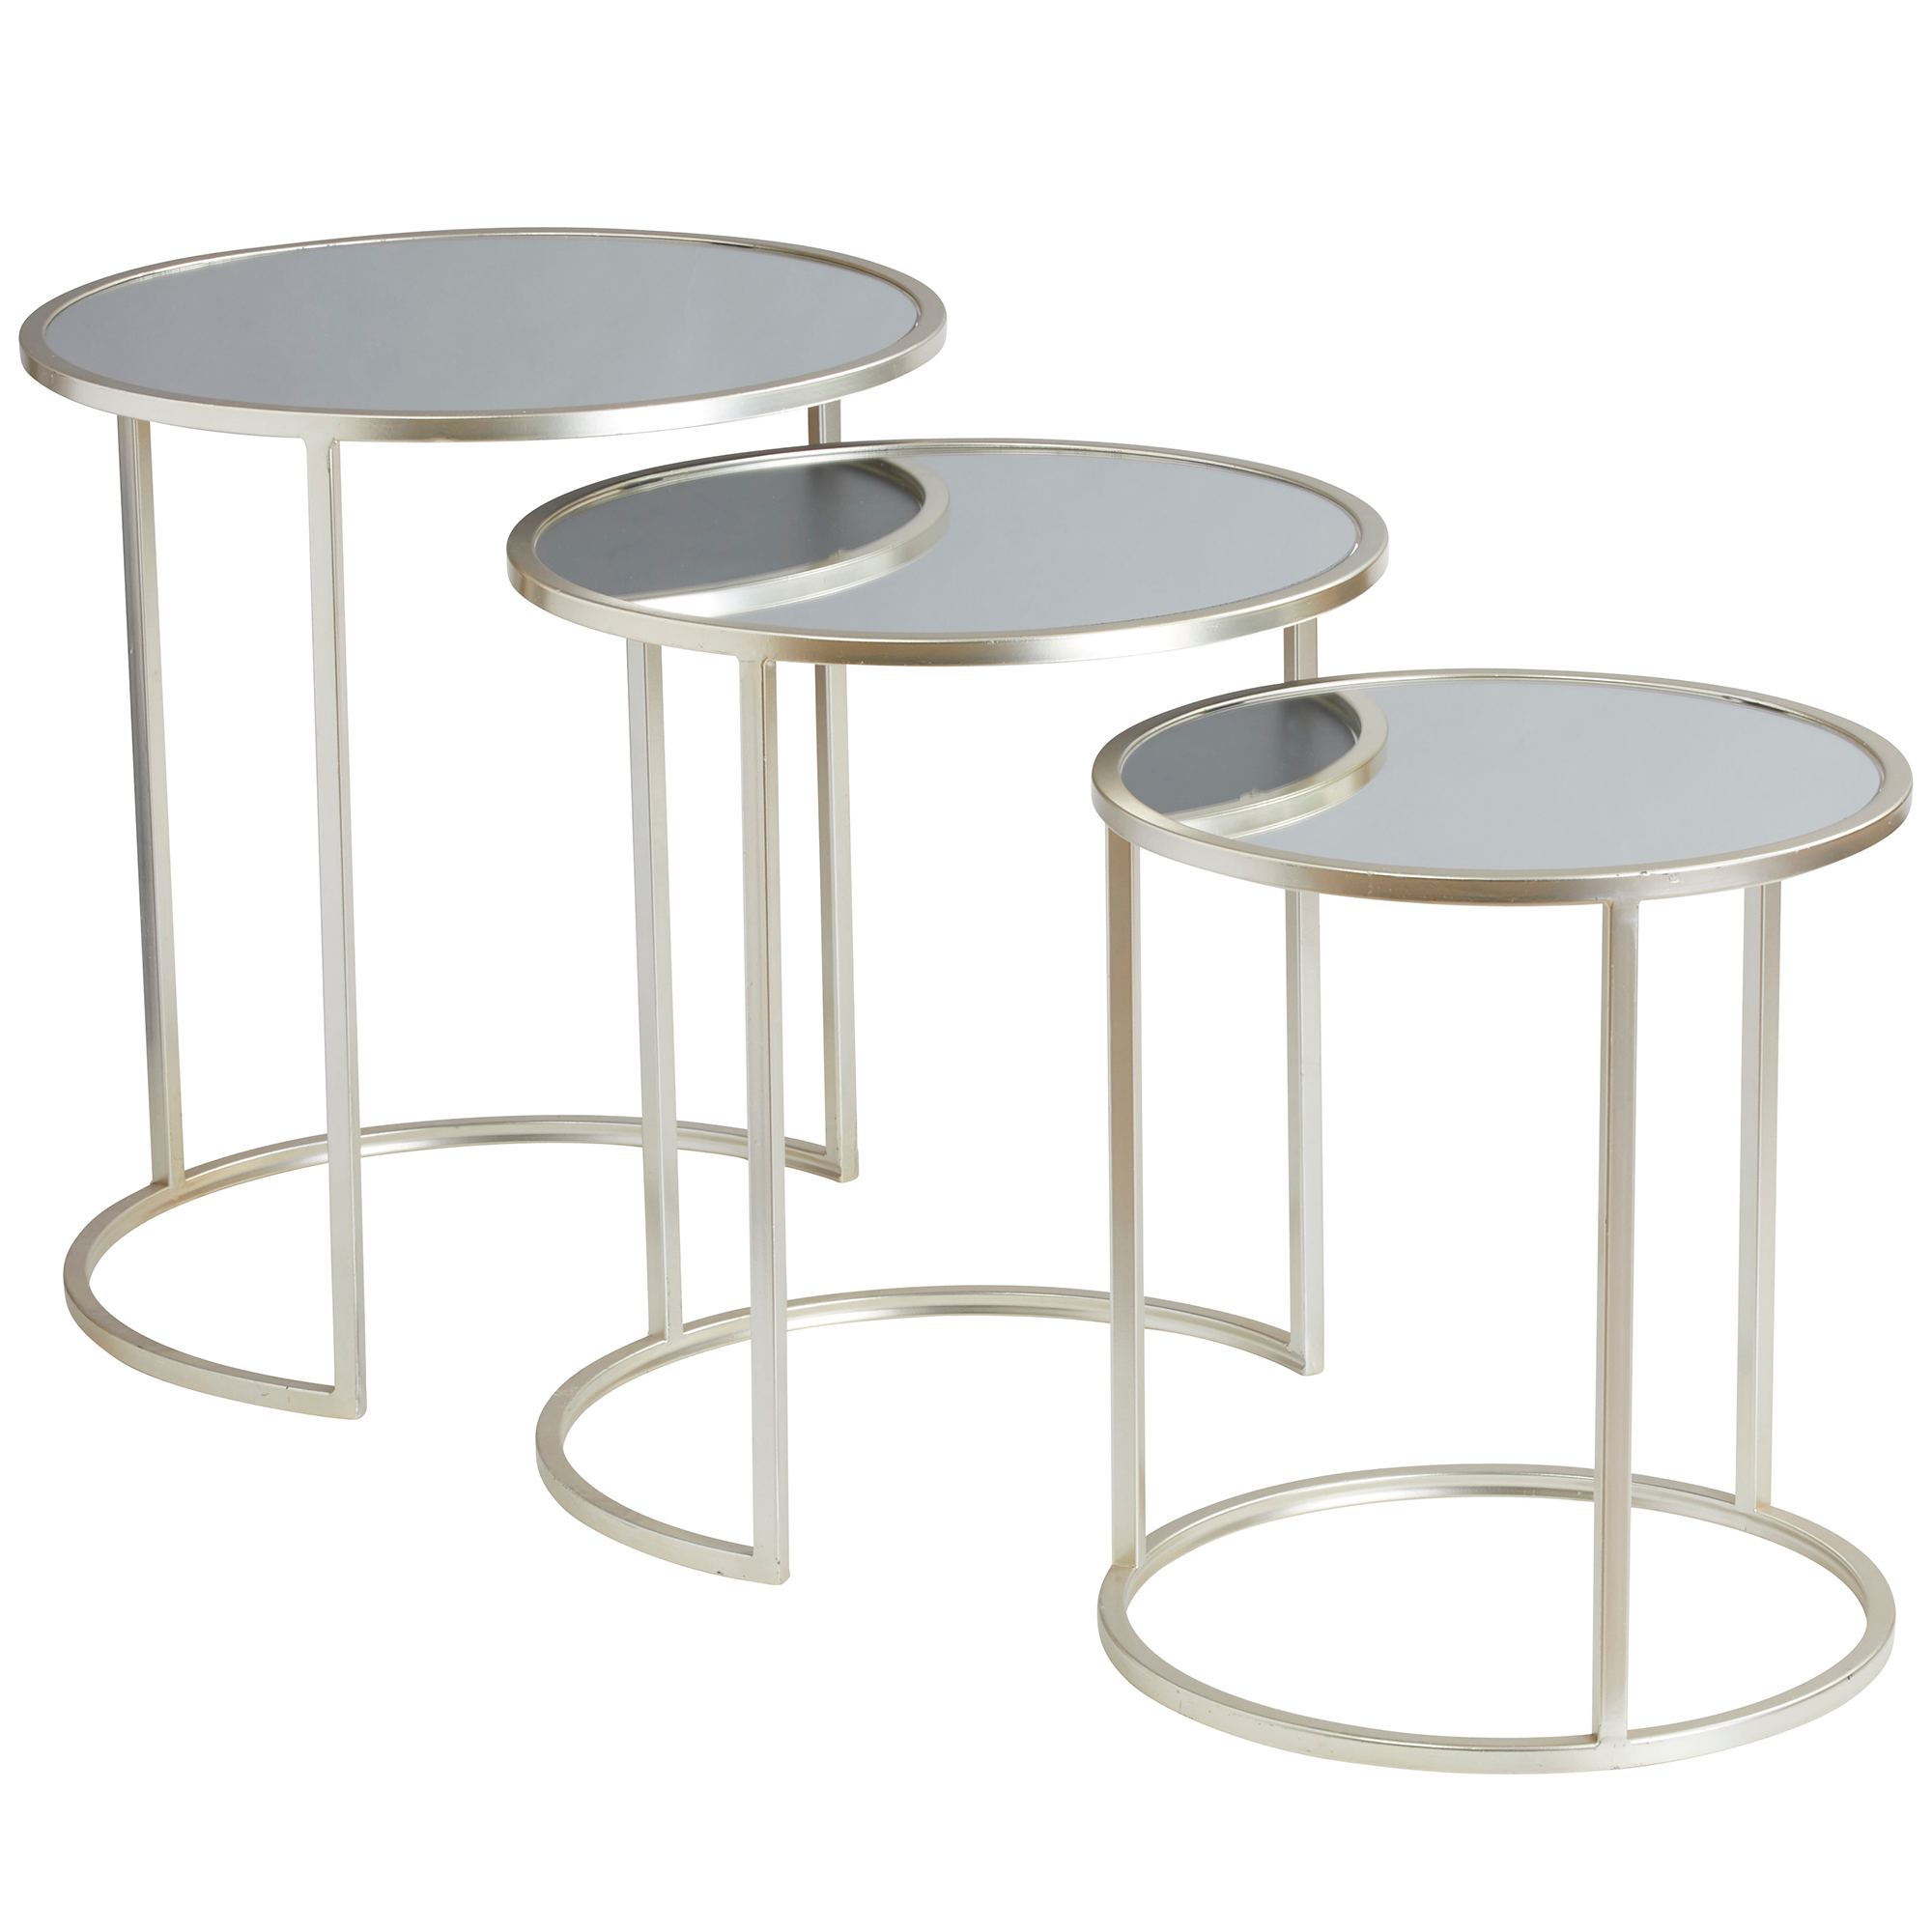 Exceptional SKU #AMAL4639 3 Piece Fitzgerald Nesting Side Table Set Is Also Sometimes  Listed Under The Following Manufacturer Numbers: FMTB 795